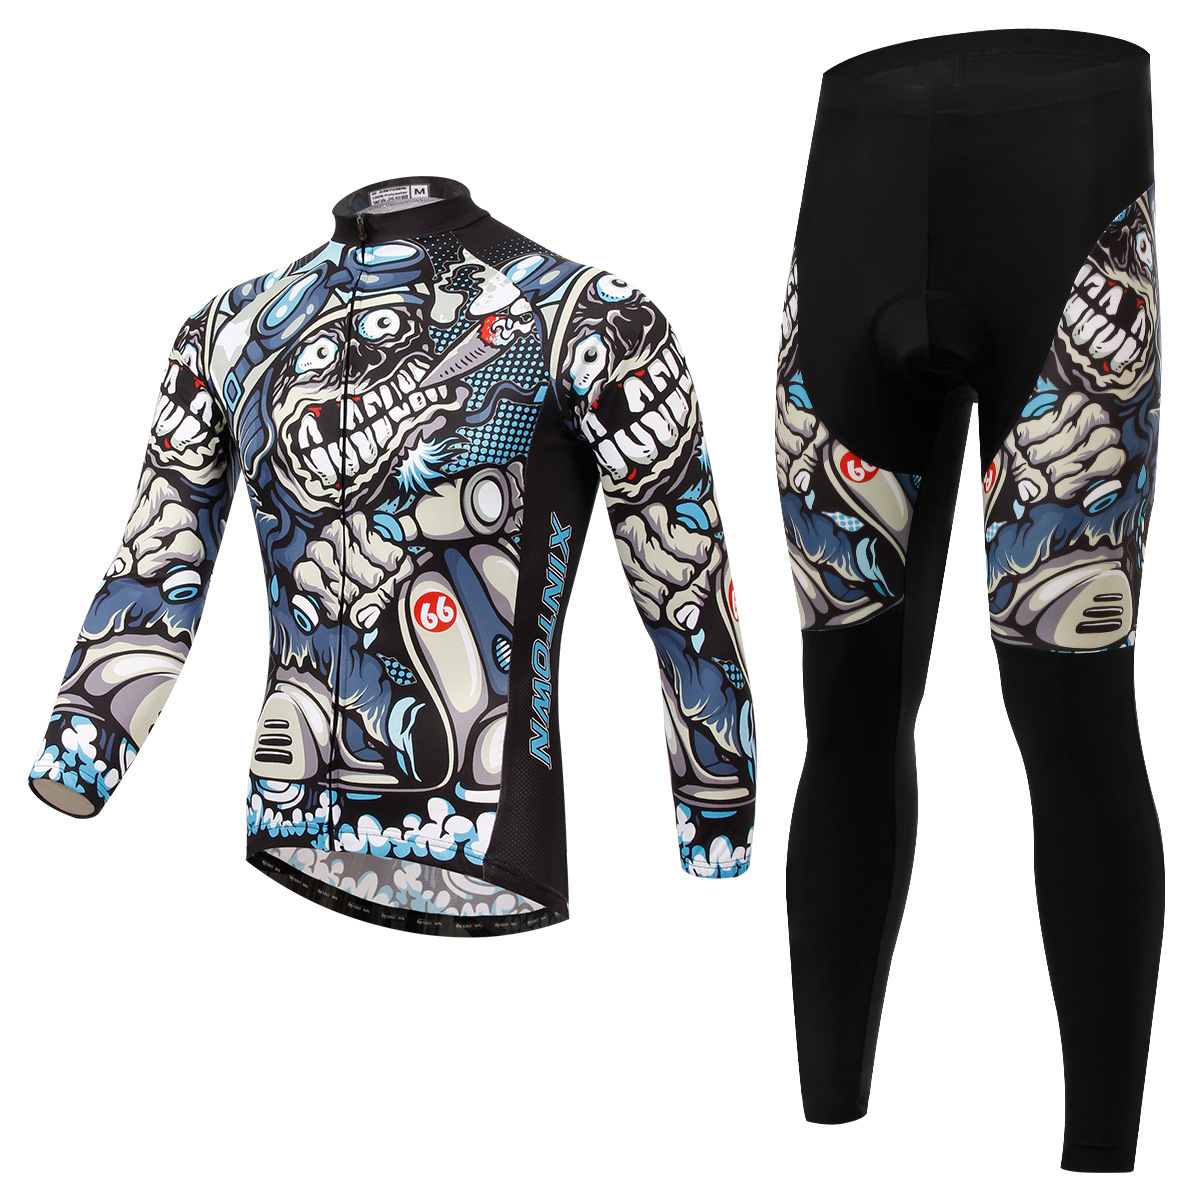 BOODUN Charge Riding Clothes Long Sleeve Bicycle Serve Catch Down Windbreak Keep Warm Function Underwear